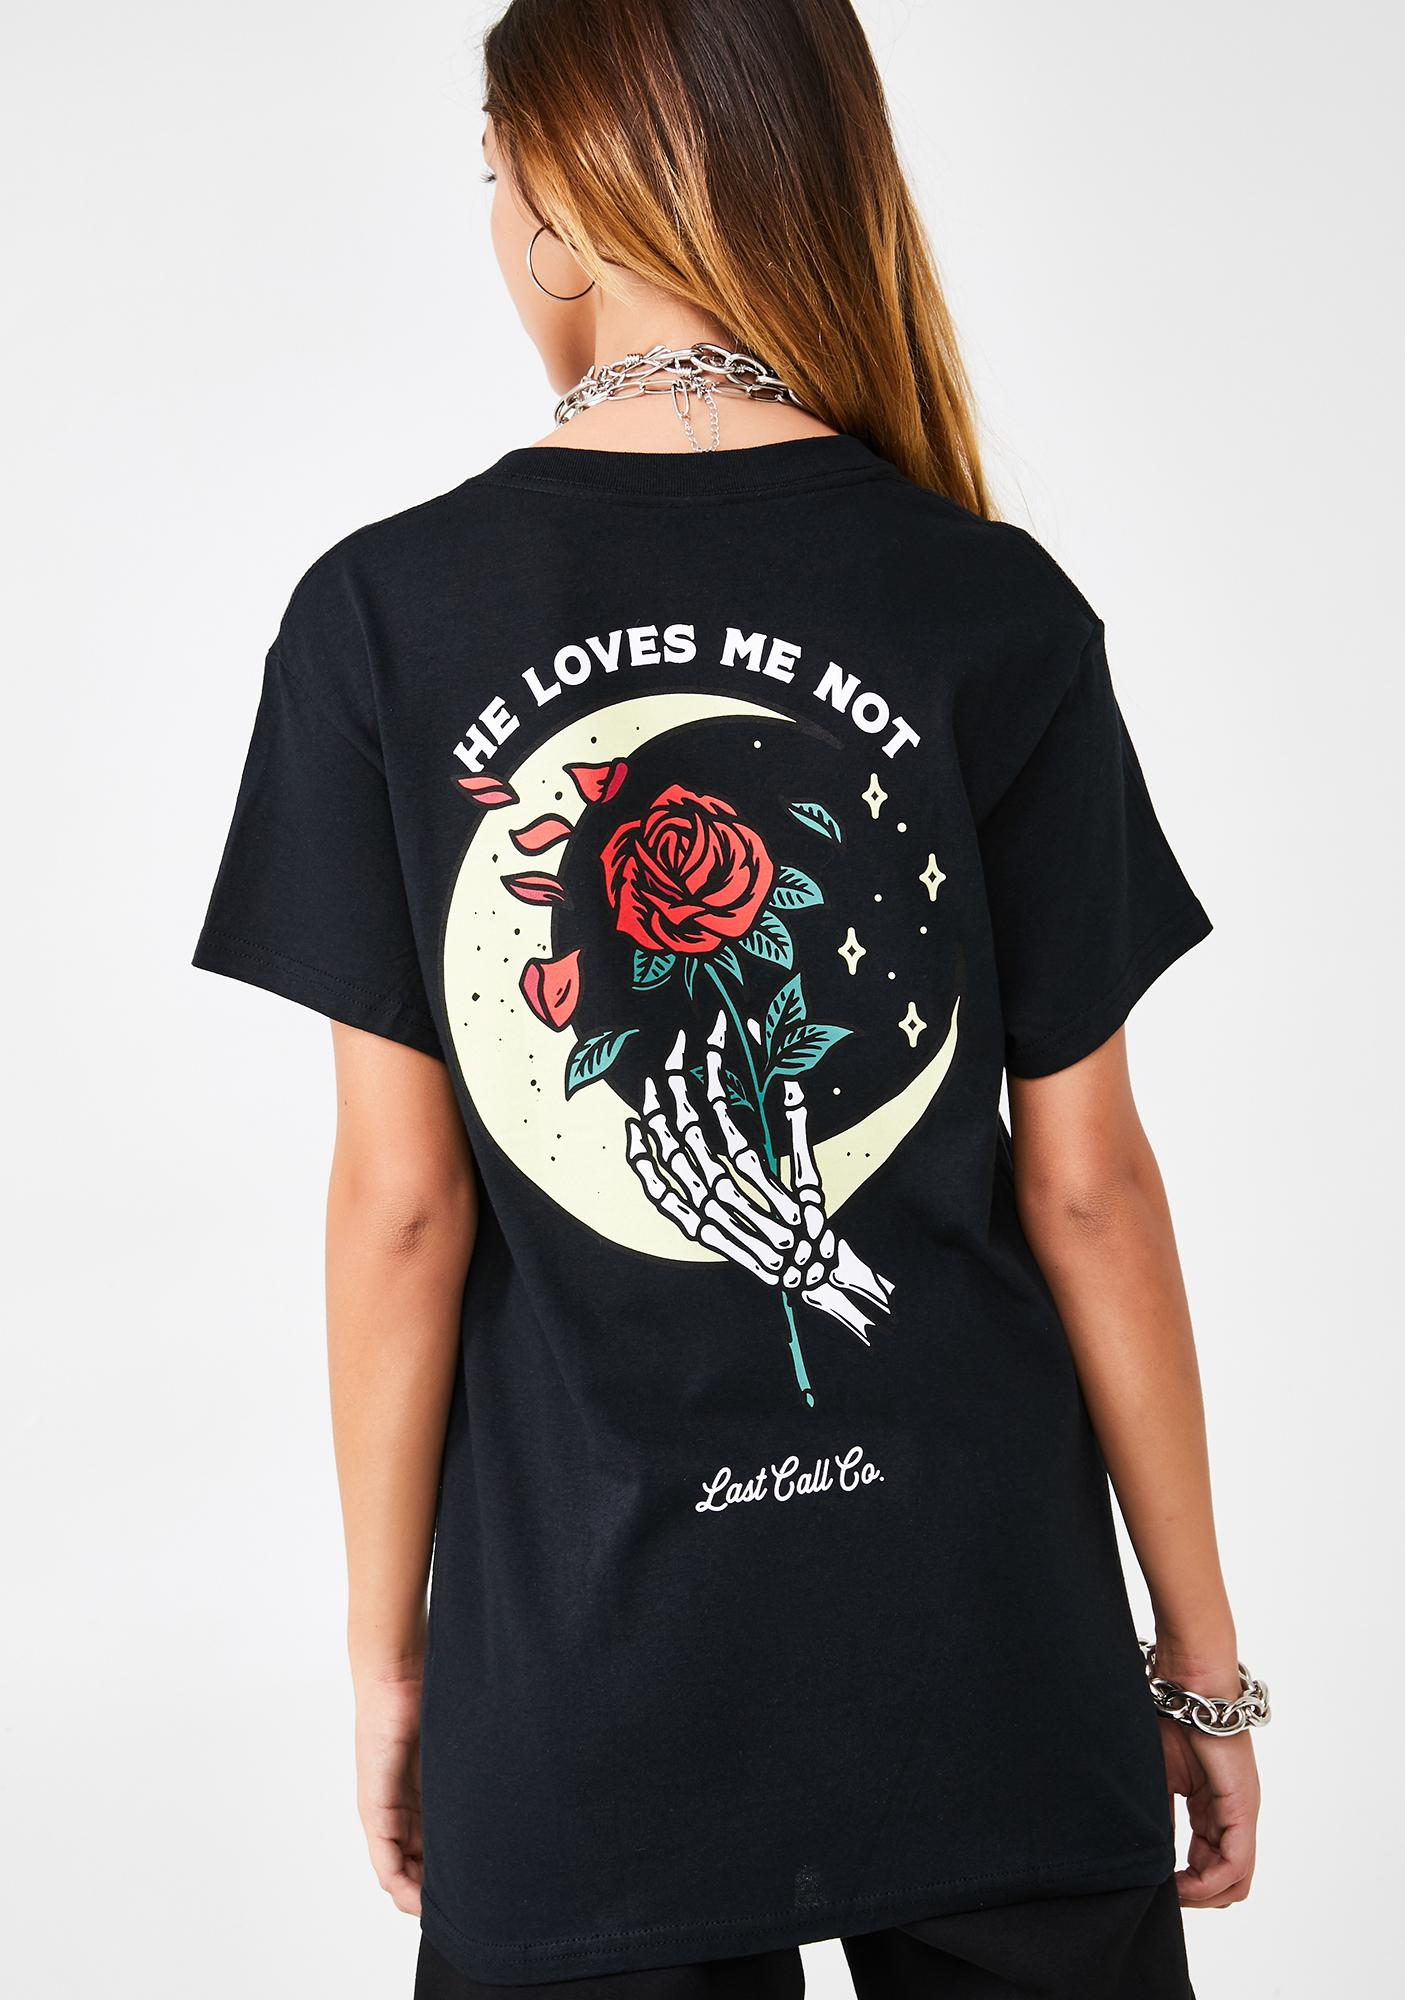 Last Call Co. Loves Me Not Graphic Tee